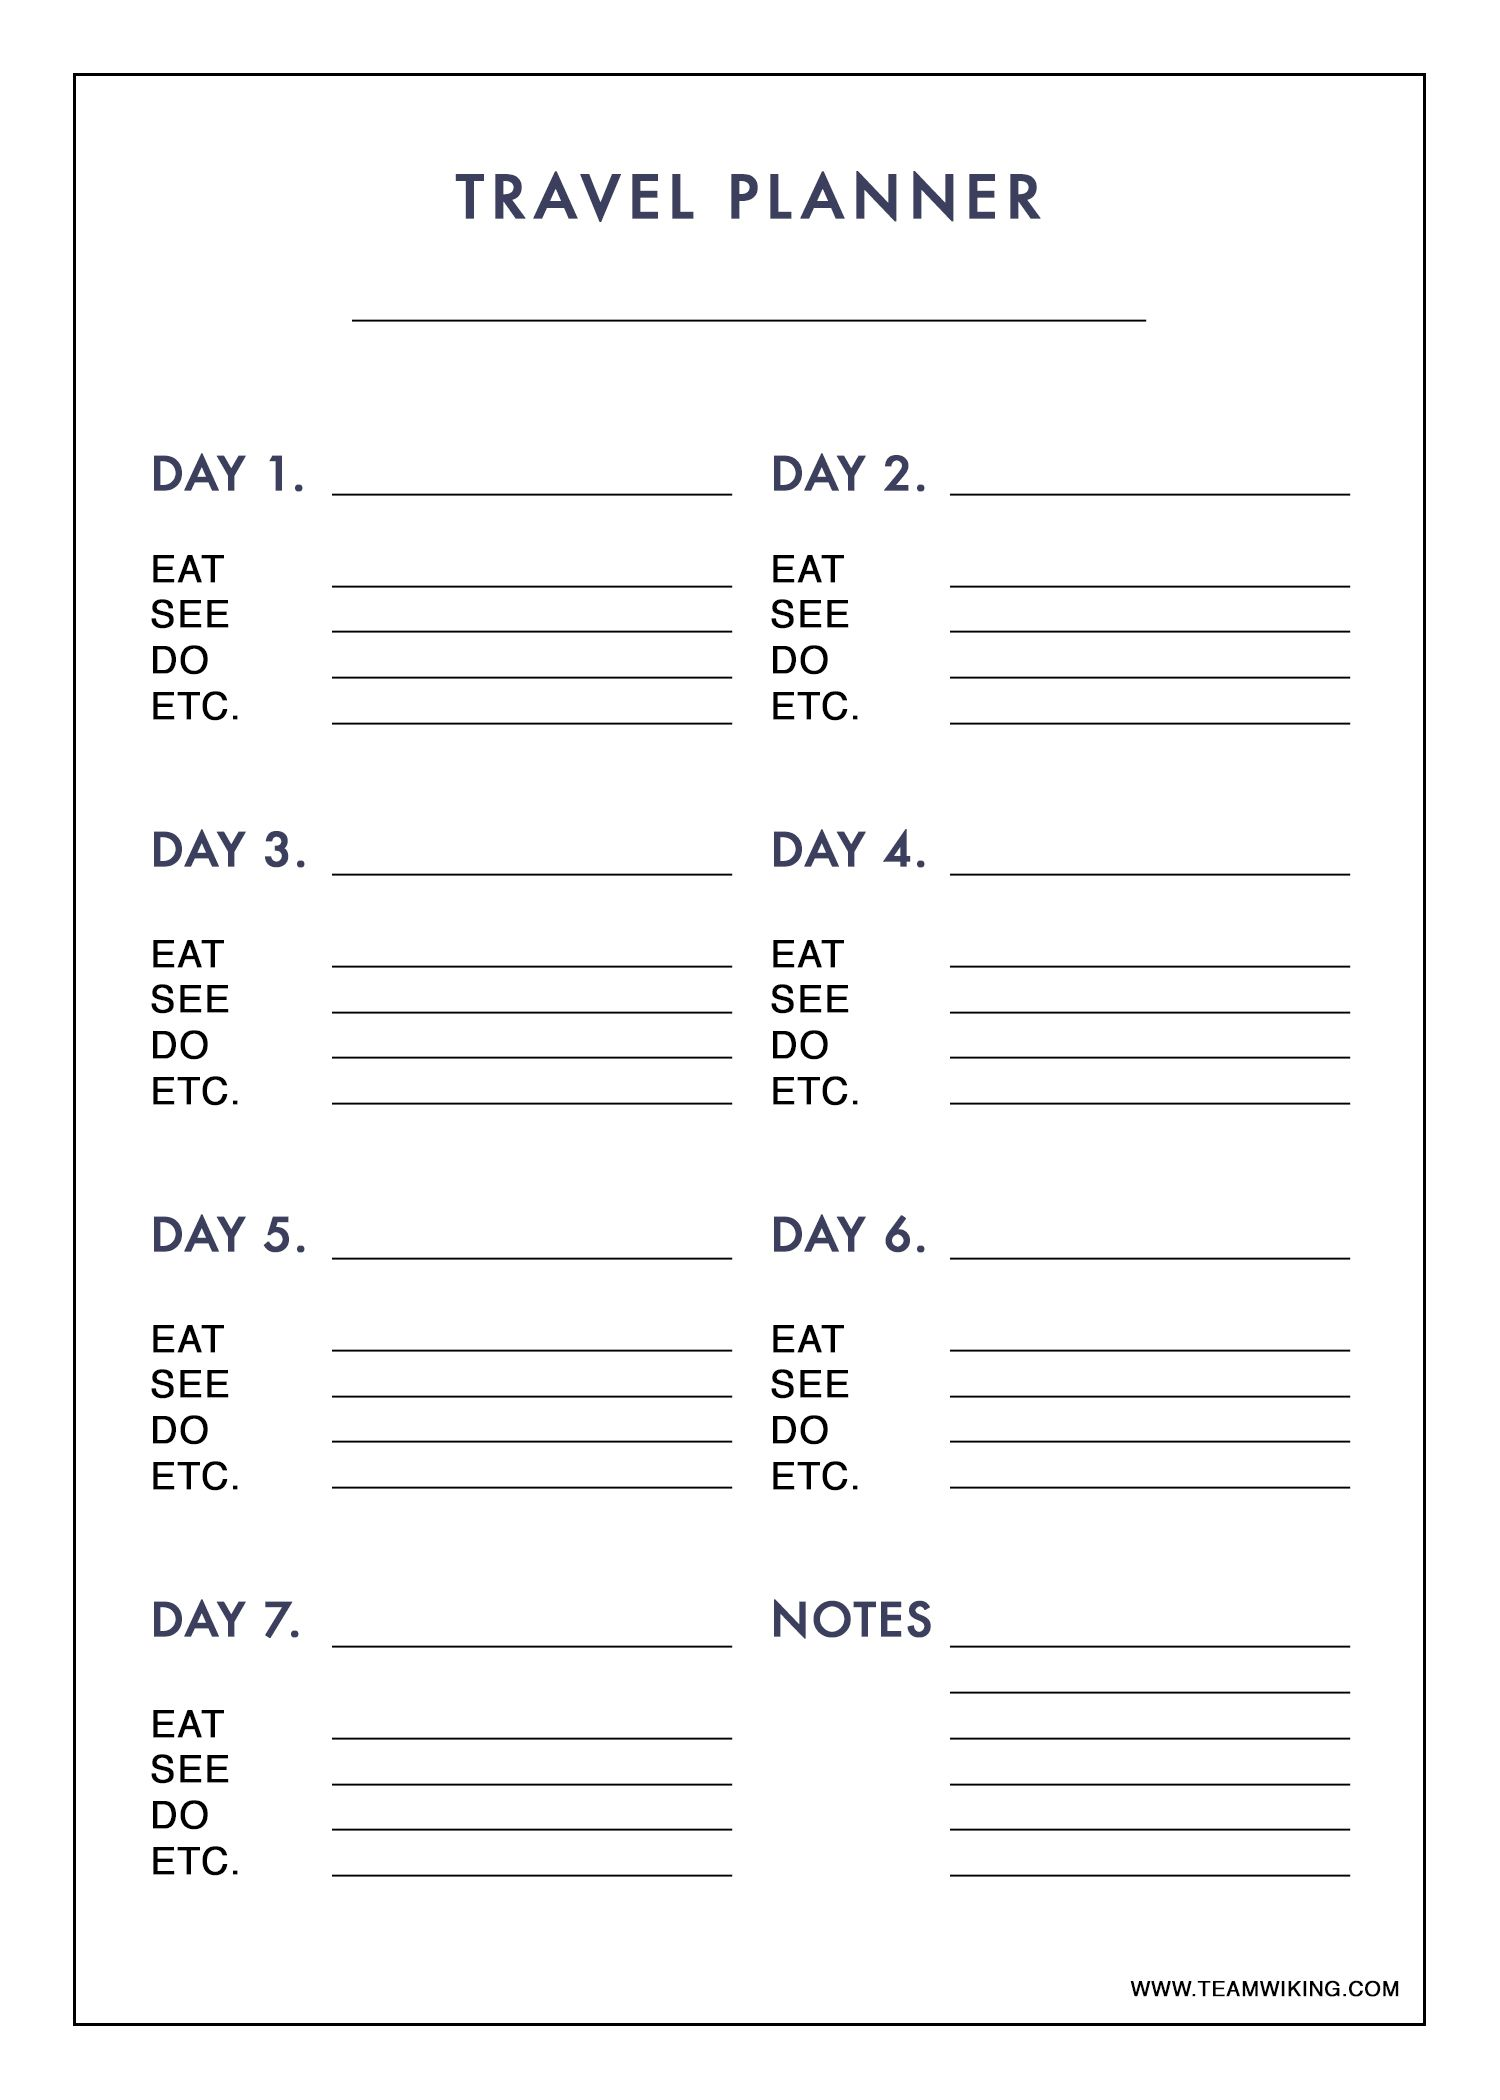 Free Printable 7 Day Travel Planner Use To Plan Outfits Packing Carry On Only Travel Itinerary Template Travel Planner Vacation Planner